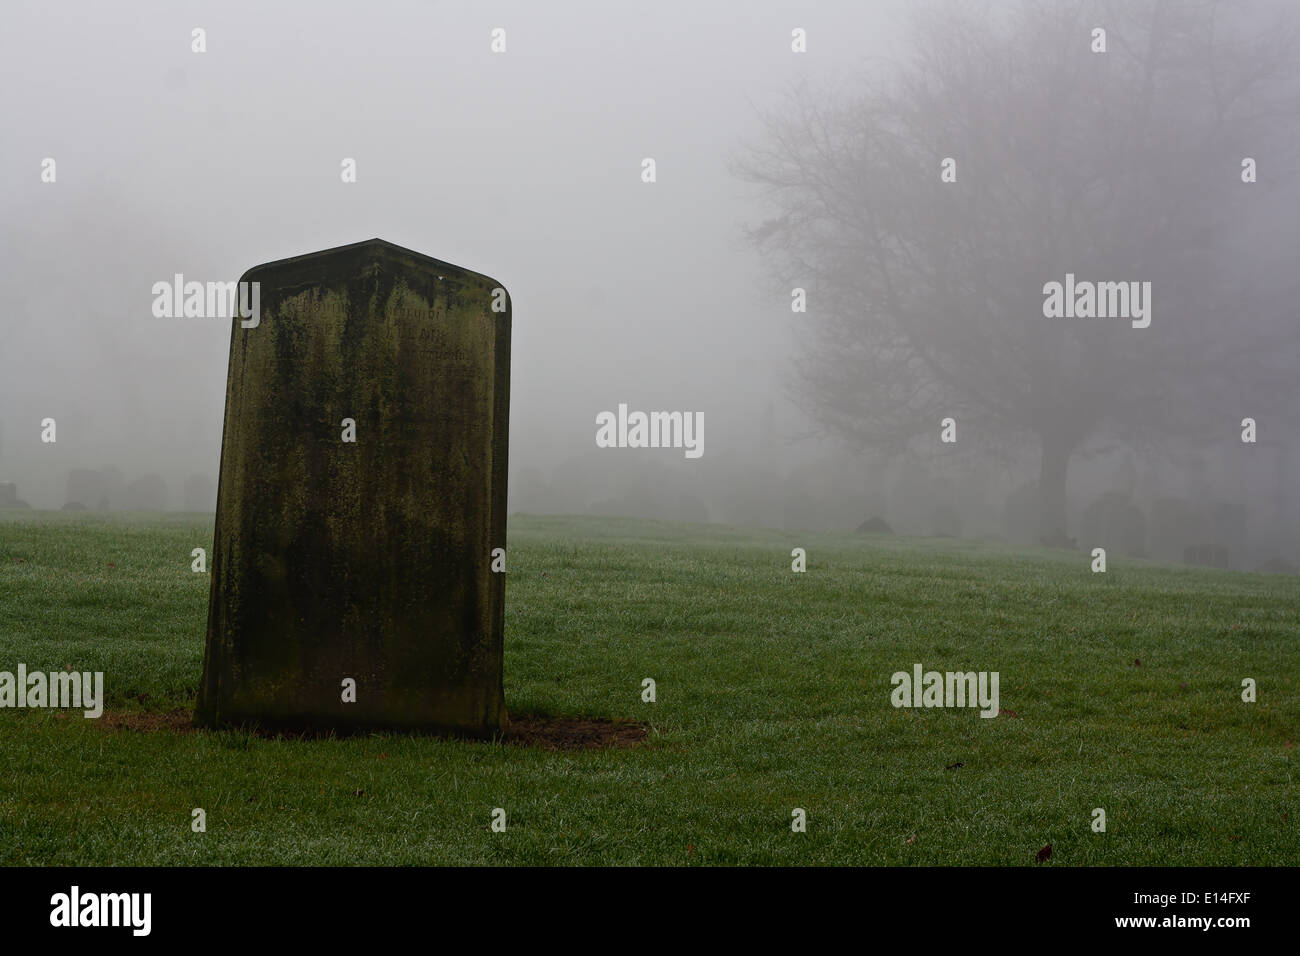 Spooky old graveyard on a foggy winters day - Stock Image